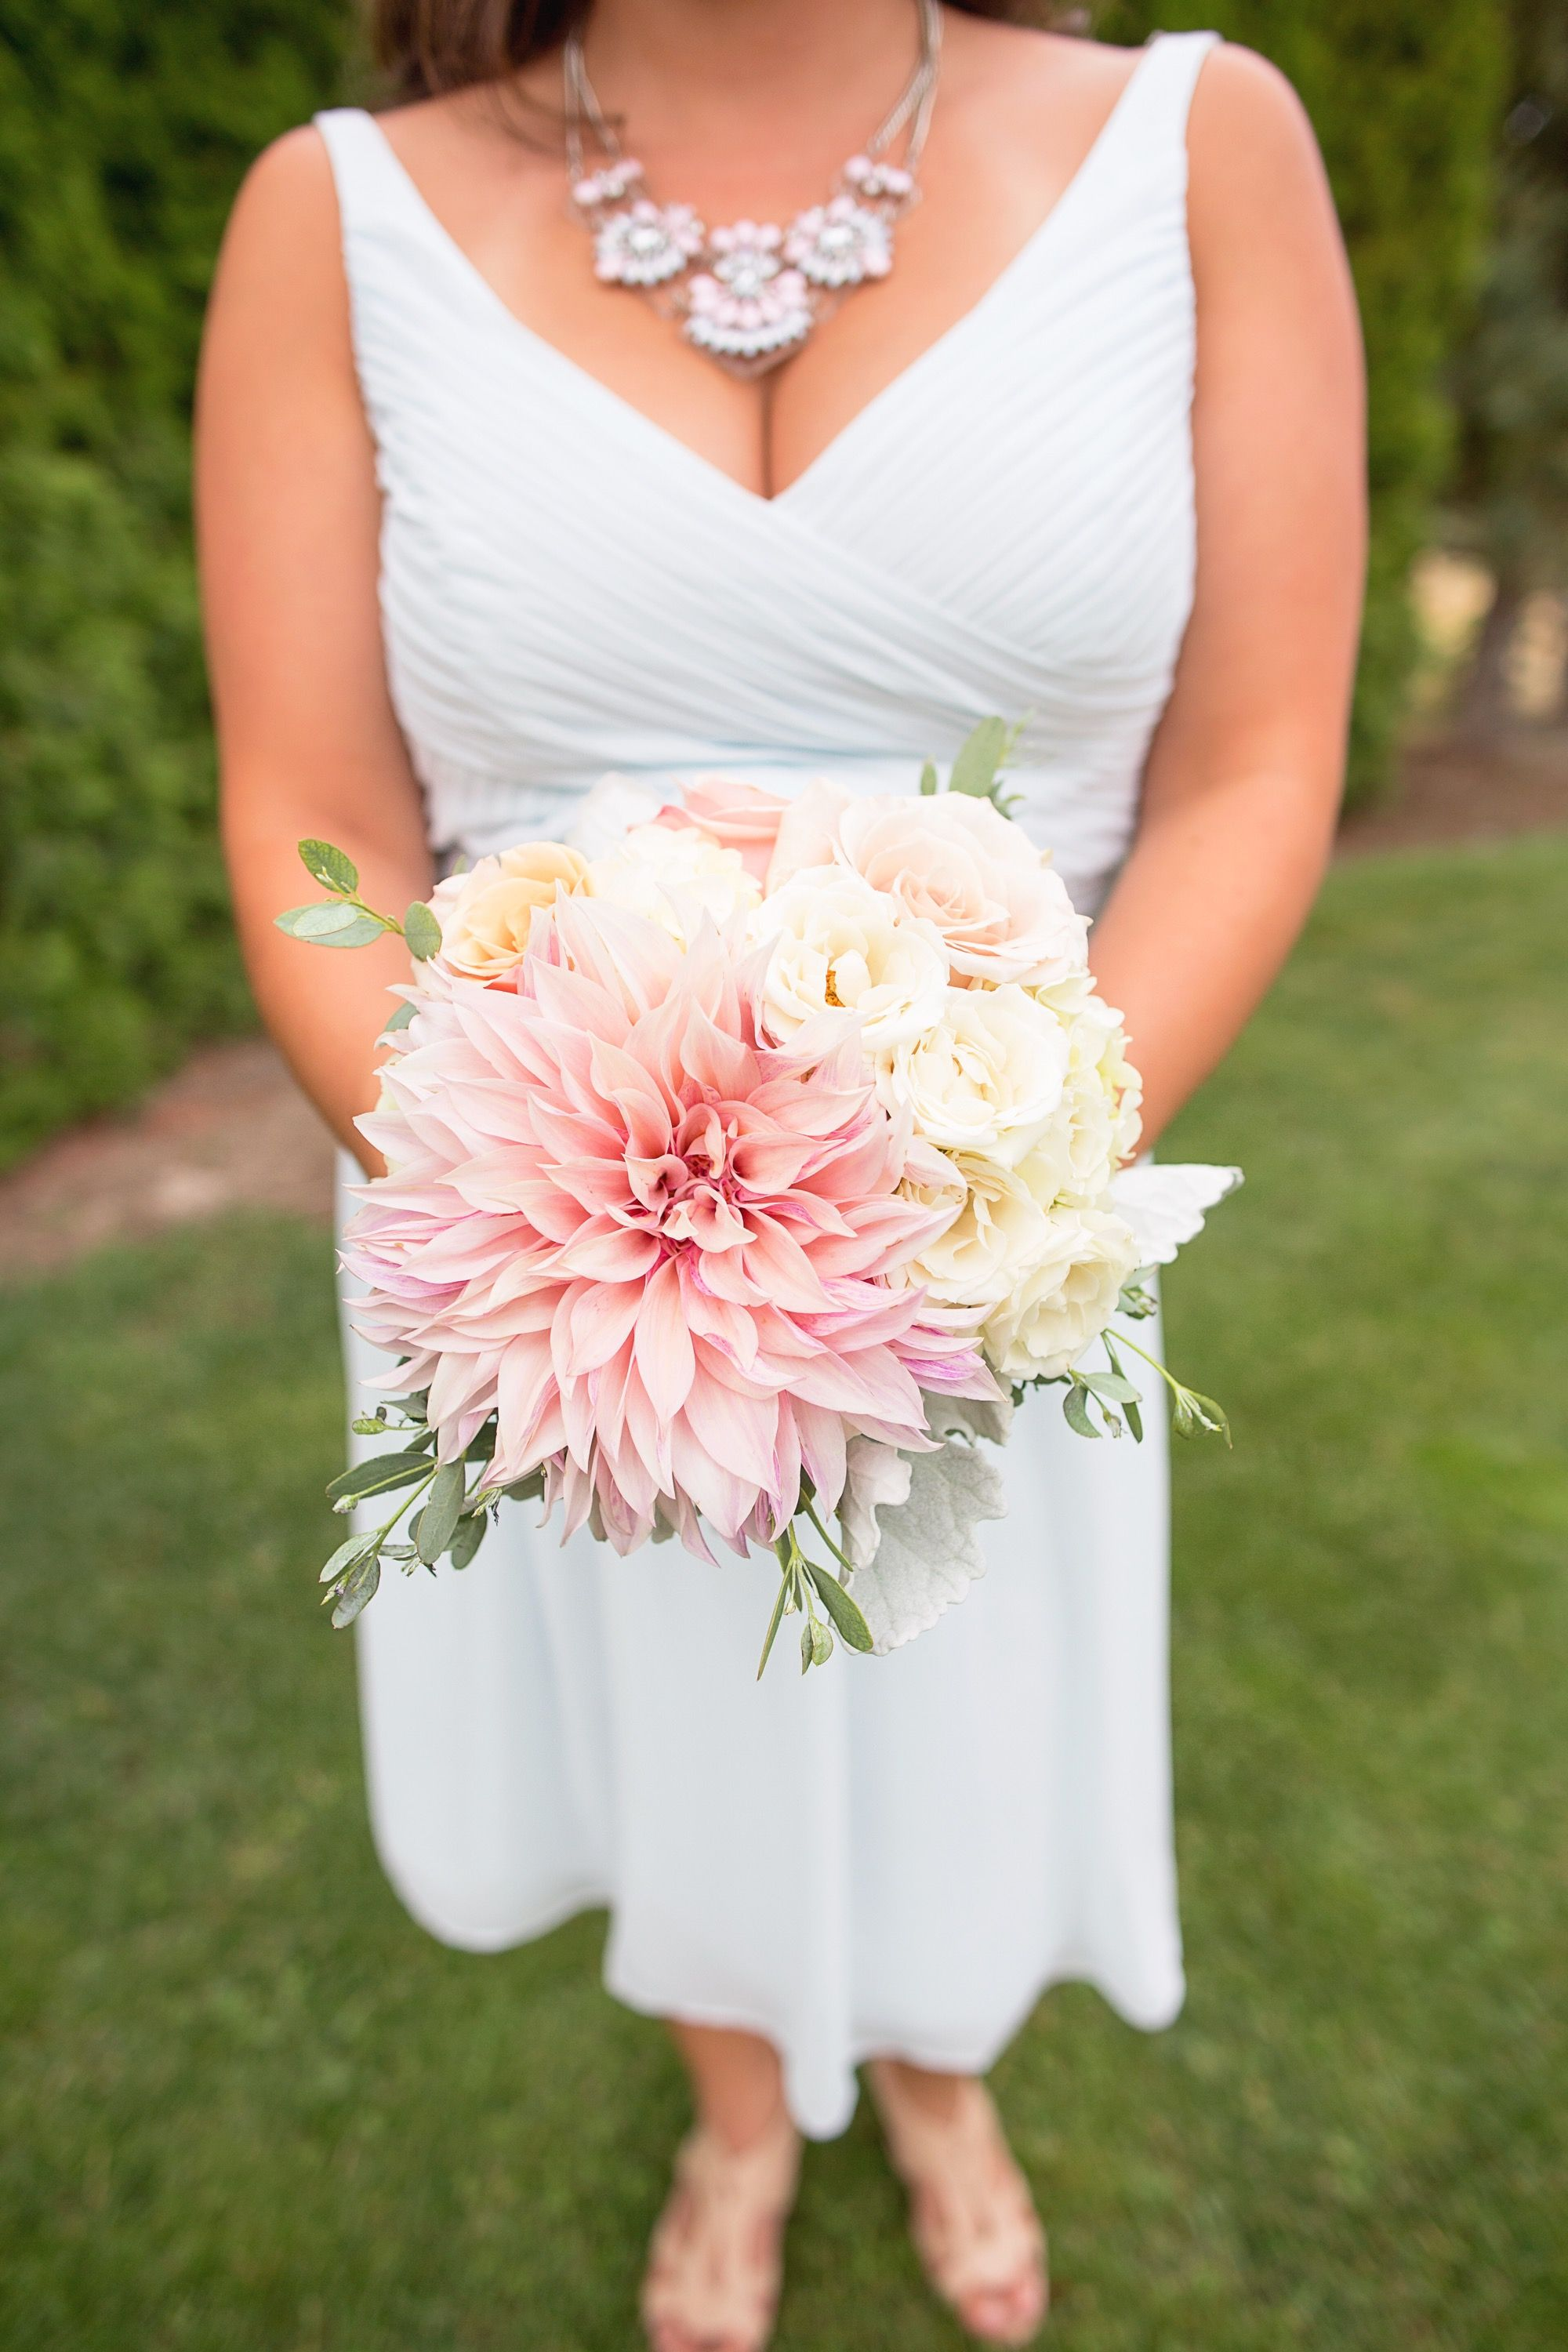 Jenice Baker Photgraphy | Rose and Blossom Wedding and Floral Events Designers